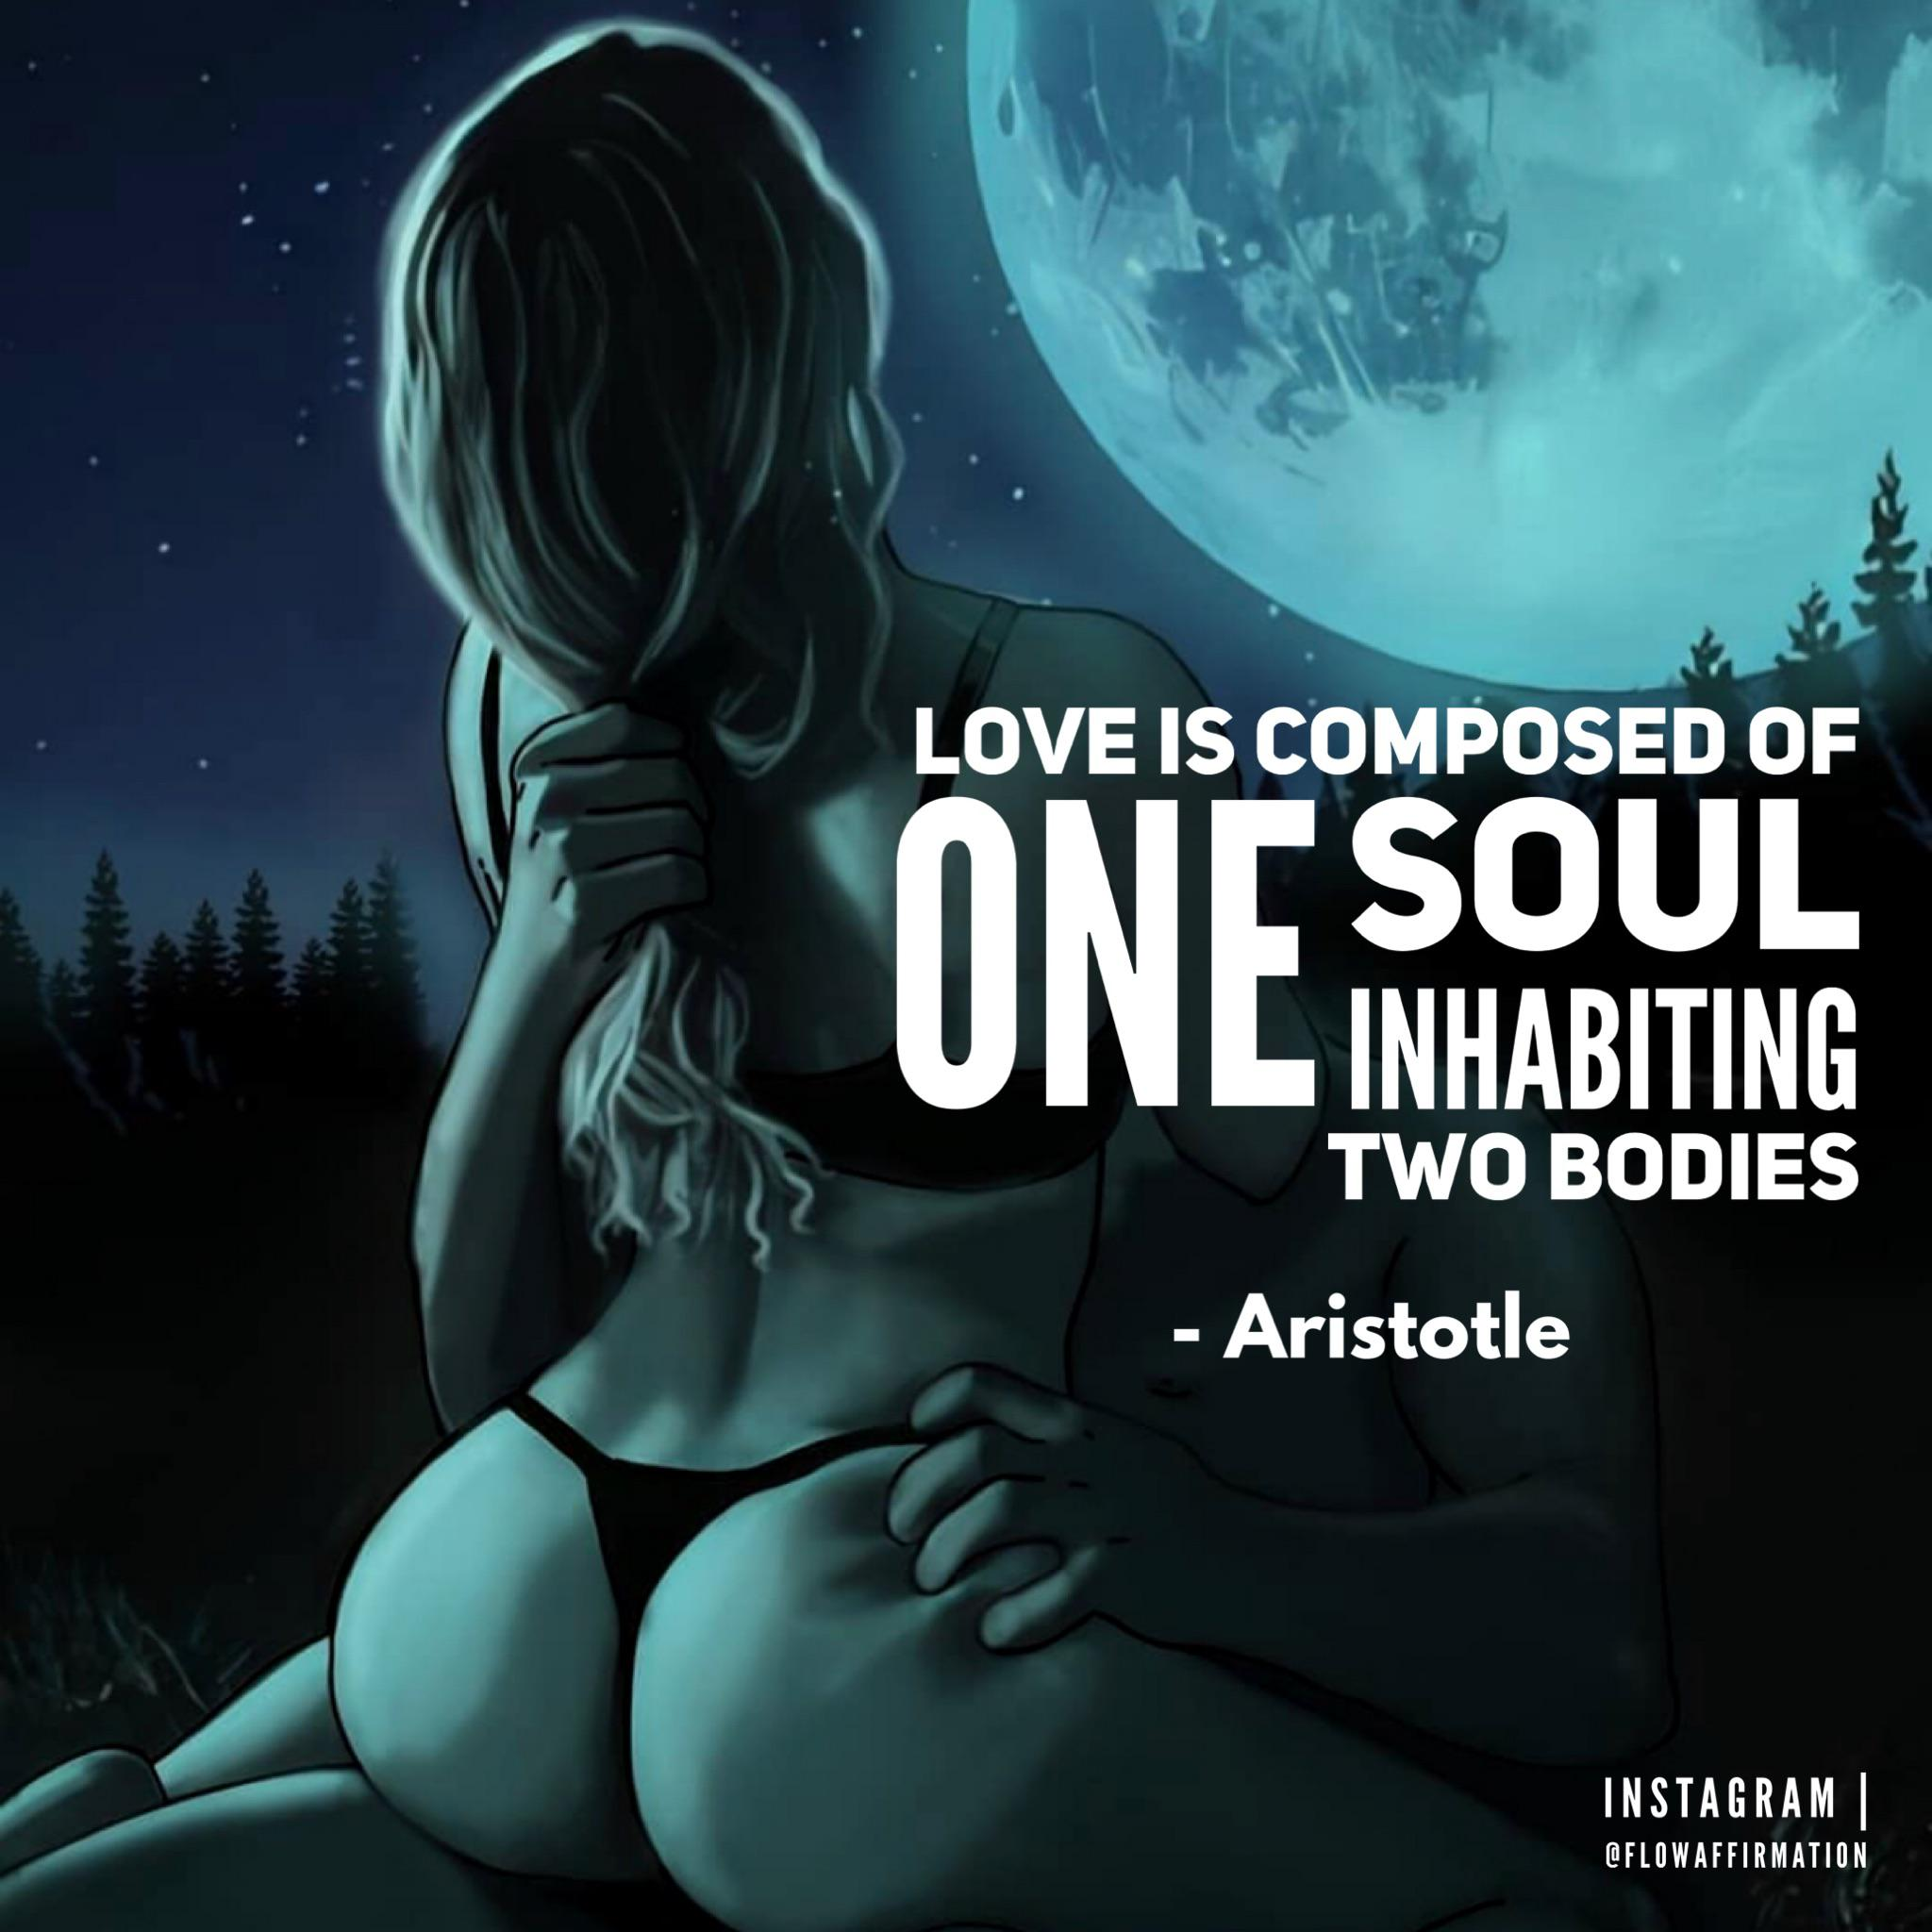 Love is composed of One soul inhabiting two bodies – Aristotle [1080 x 1080] px